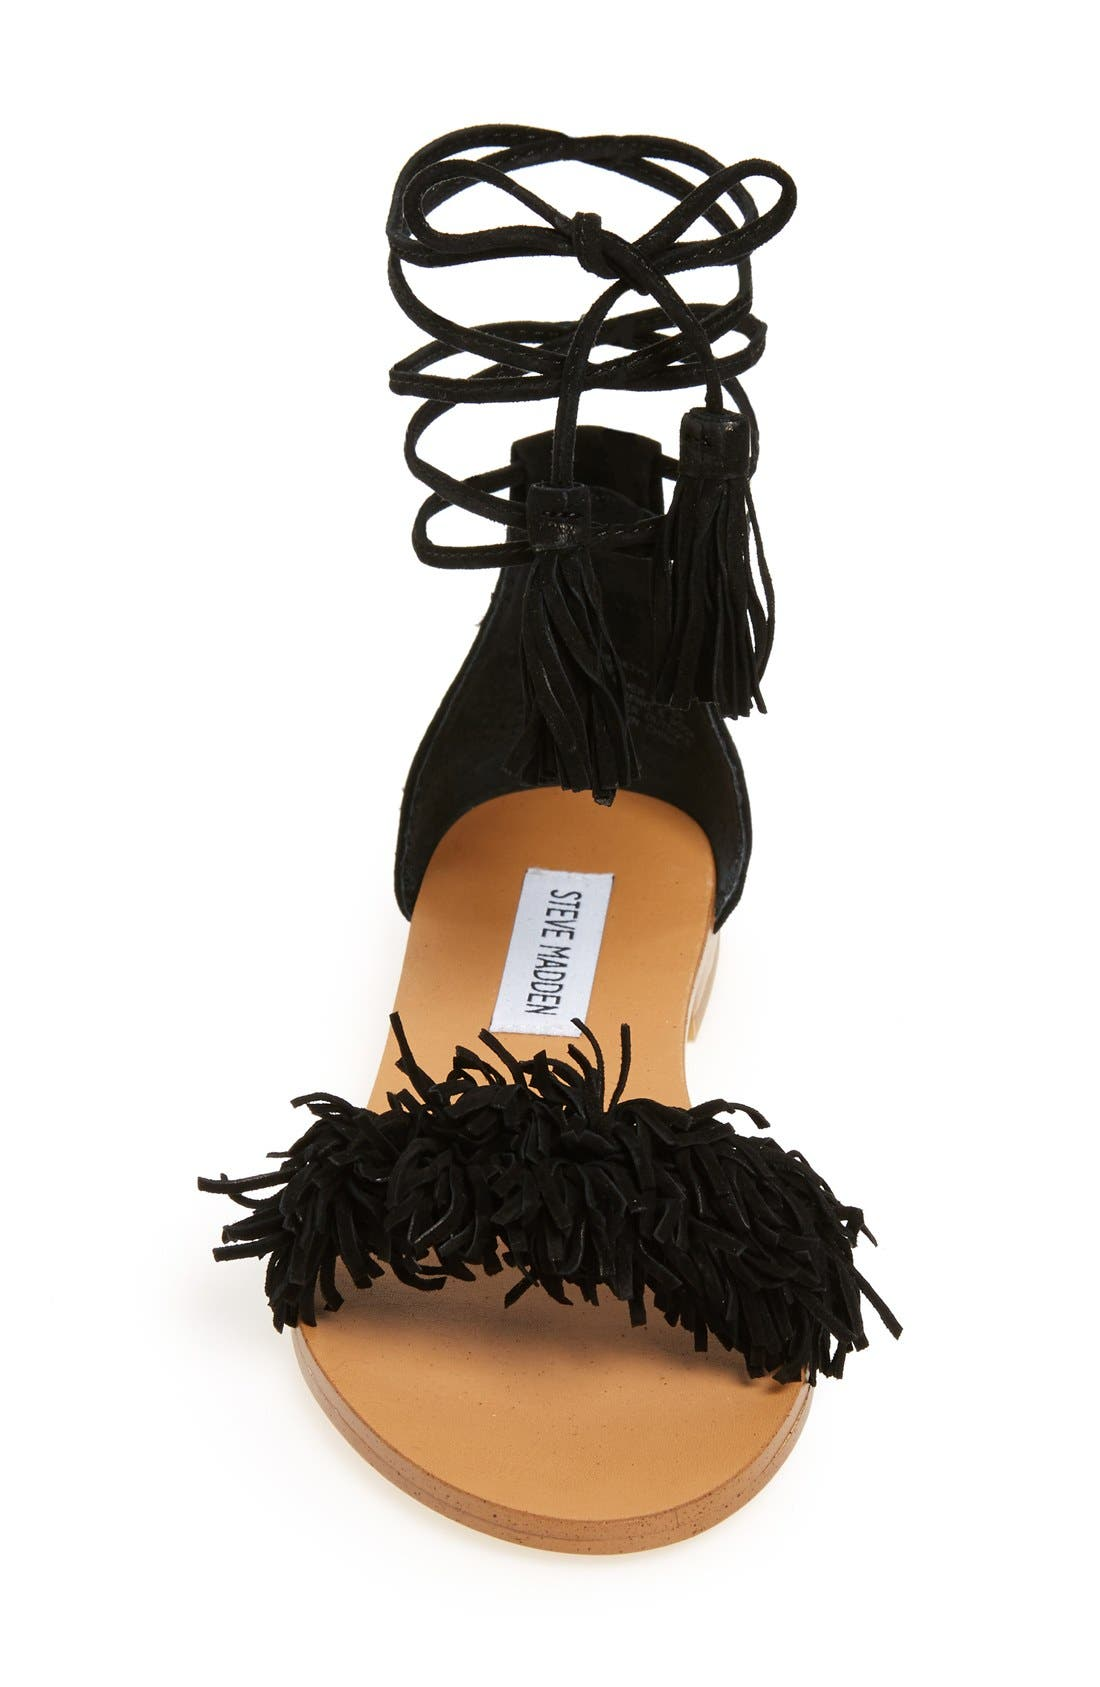 'Sweetyy' Lace-Up Sandal,                             Alternate thumbnail 3, color,                             006